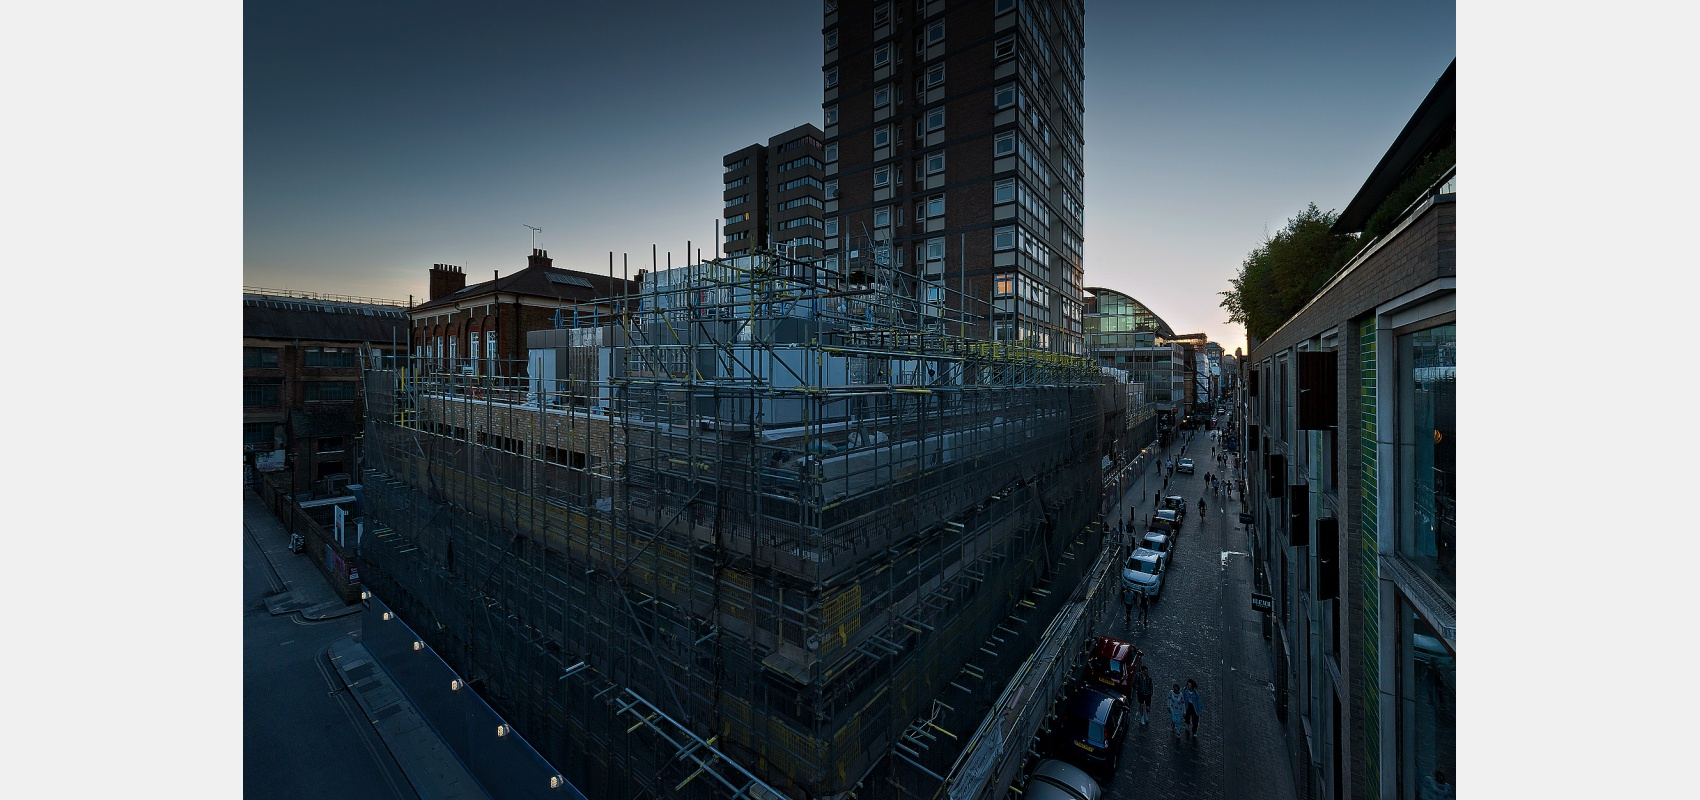 Construction Photography.Twilight background picture of development in central London for building render image.